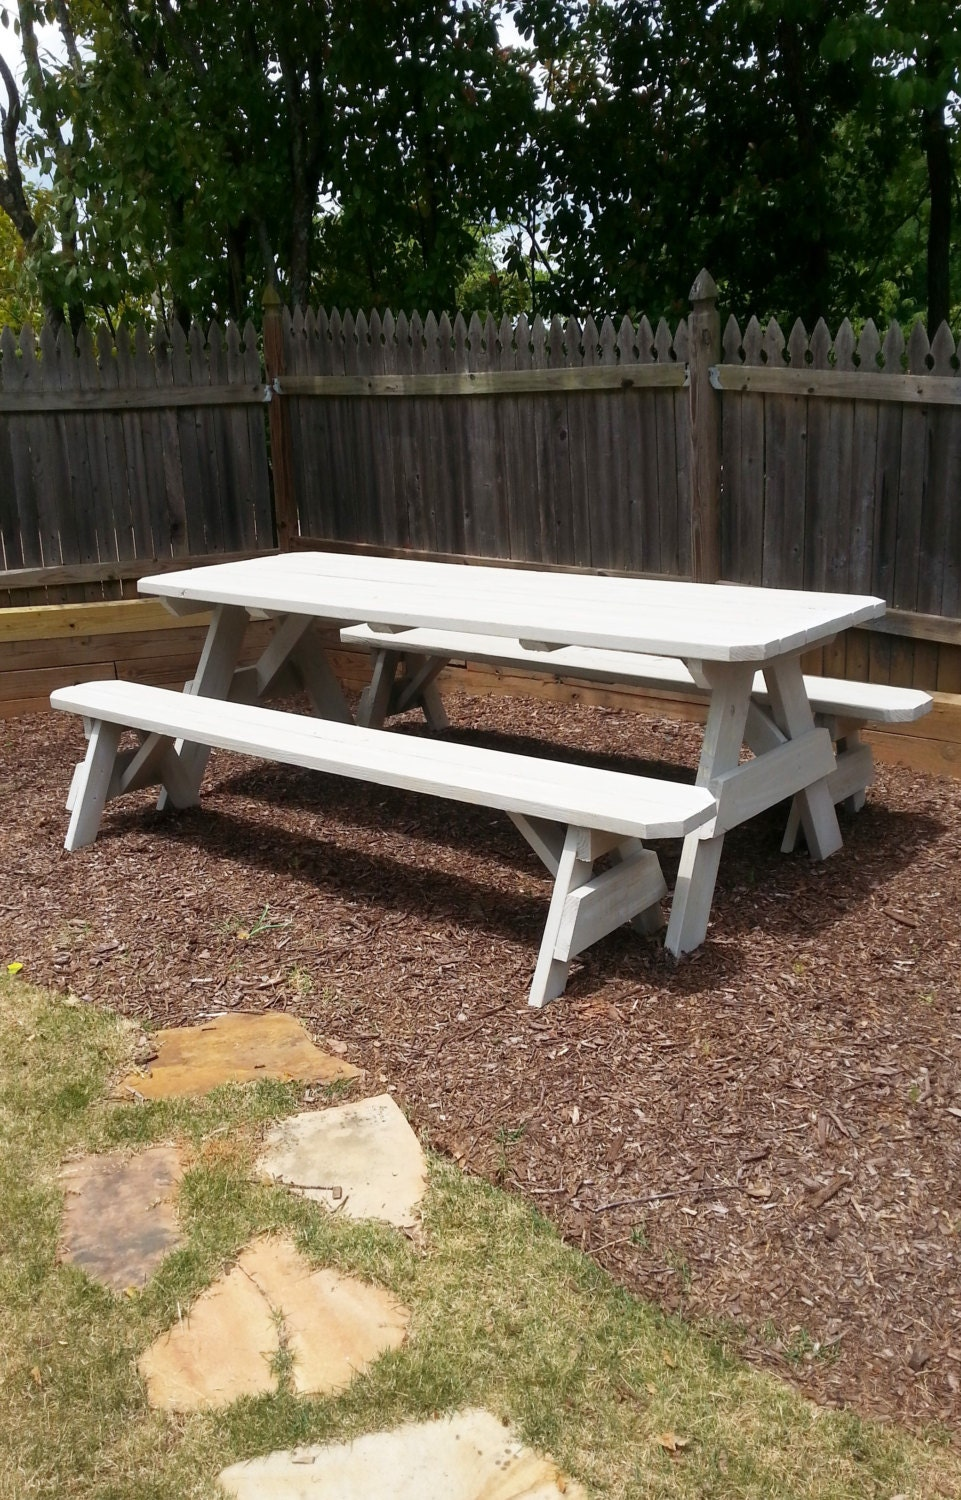 8ft picnic table with detached bench seating and a distressed. Black Bedroom Furniture Sets. Home Design Ideas